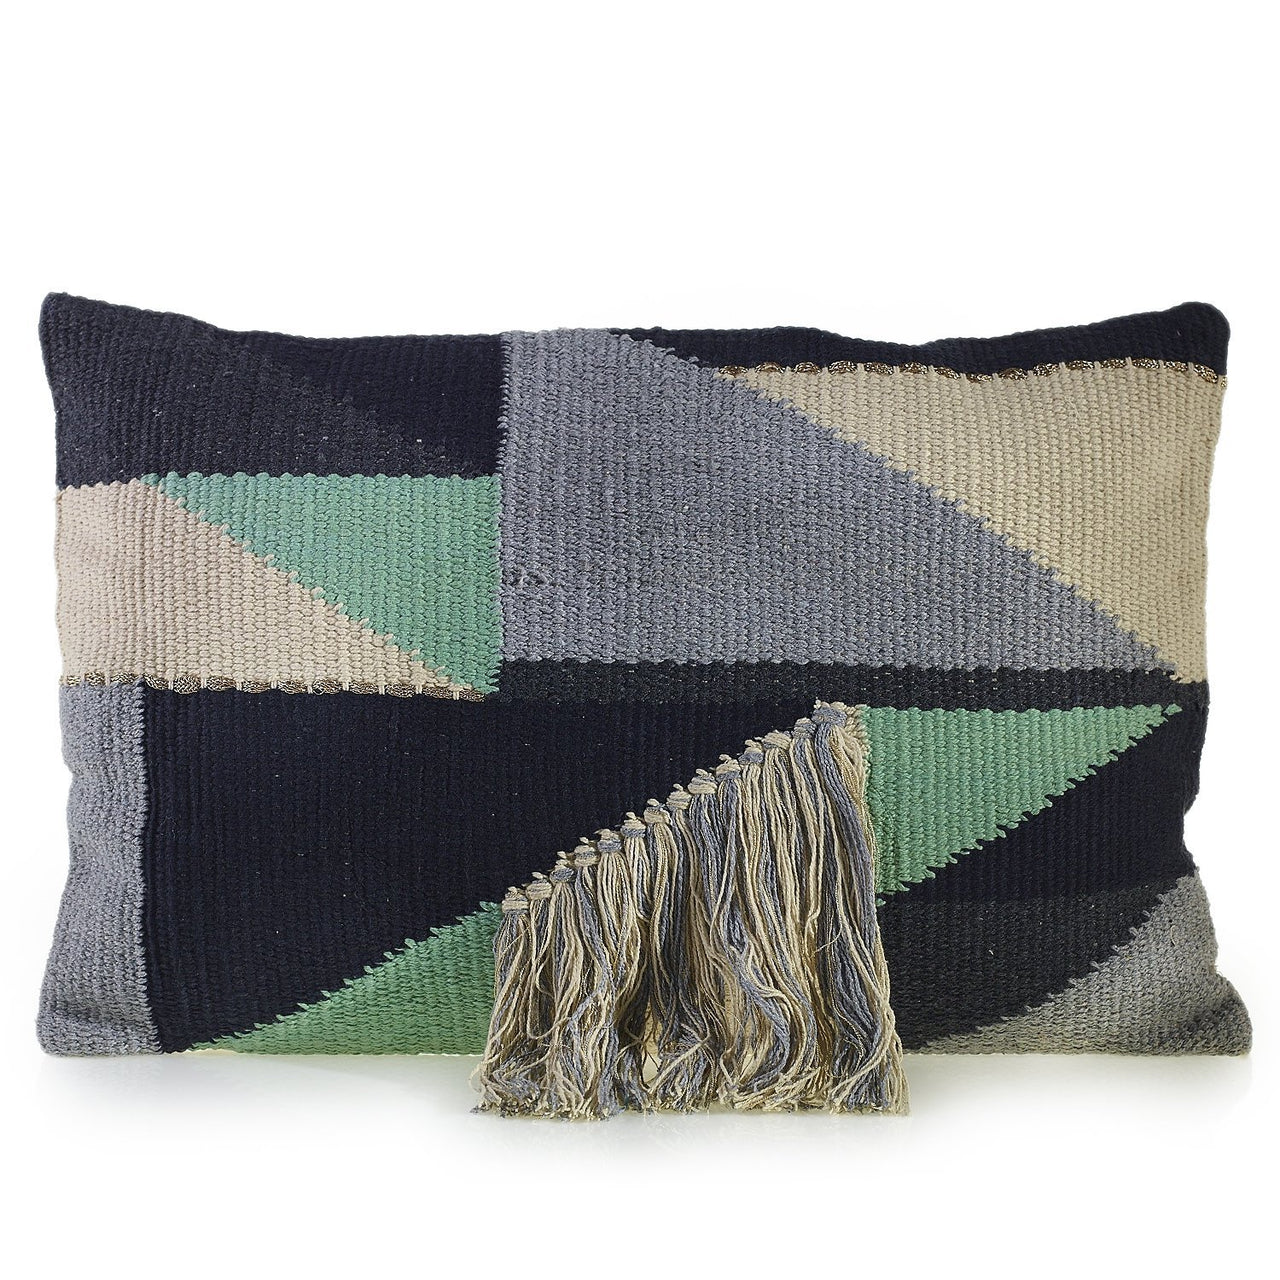 Mahalo Pillow with Geo Design - PoppyandPeaches.com - Accent Decor